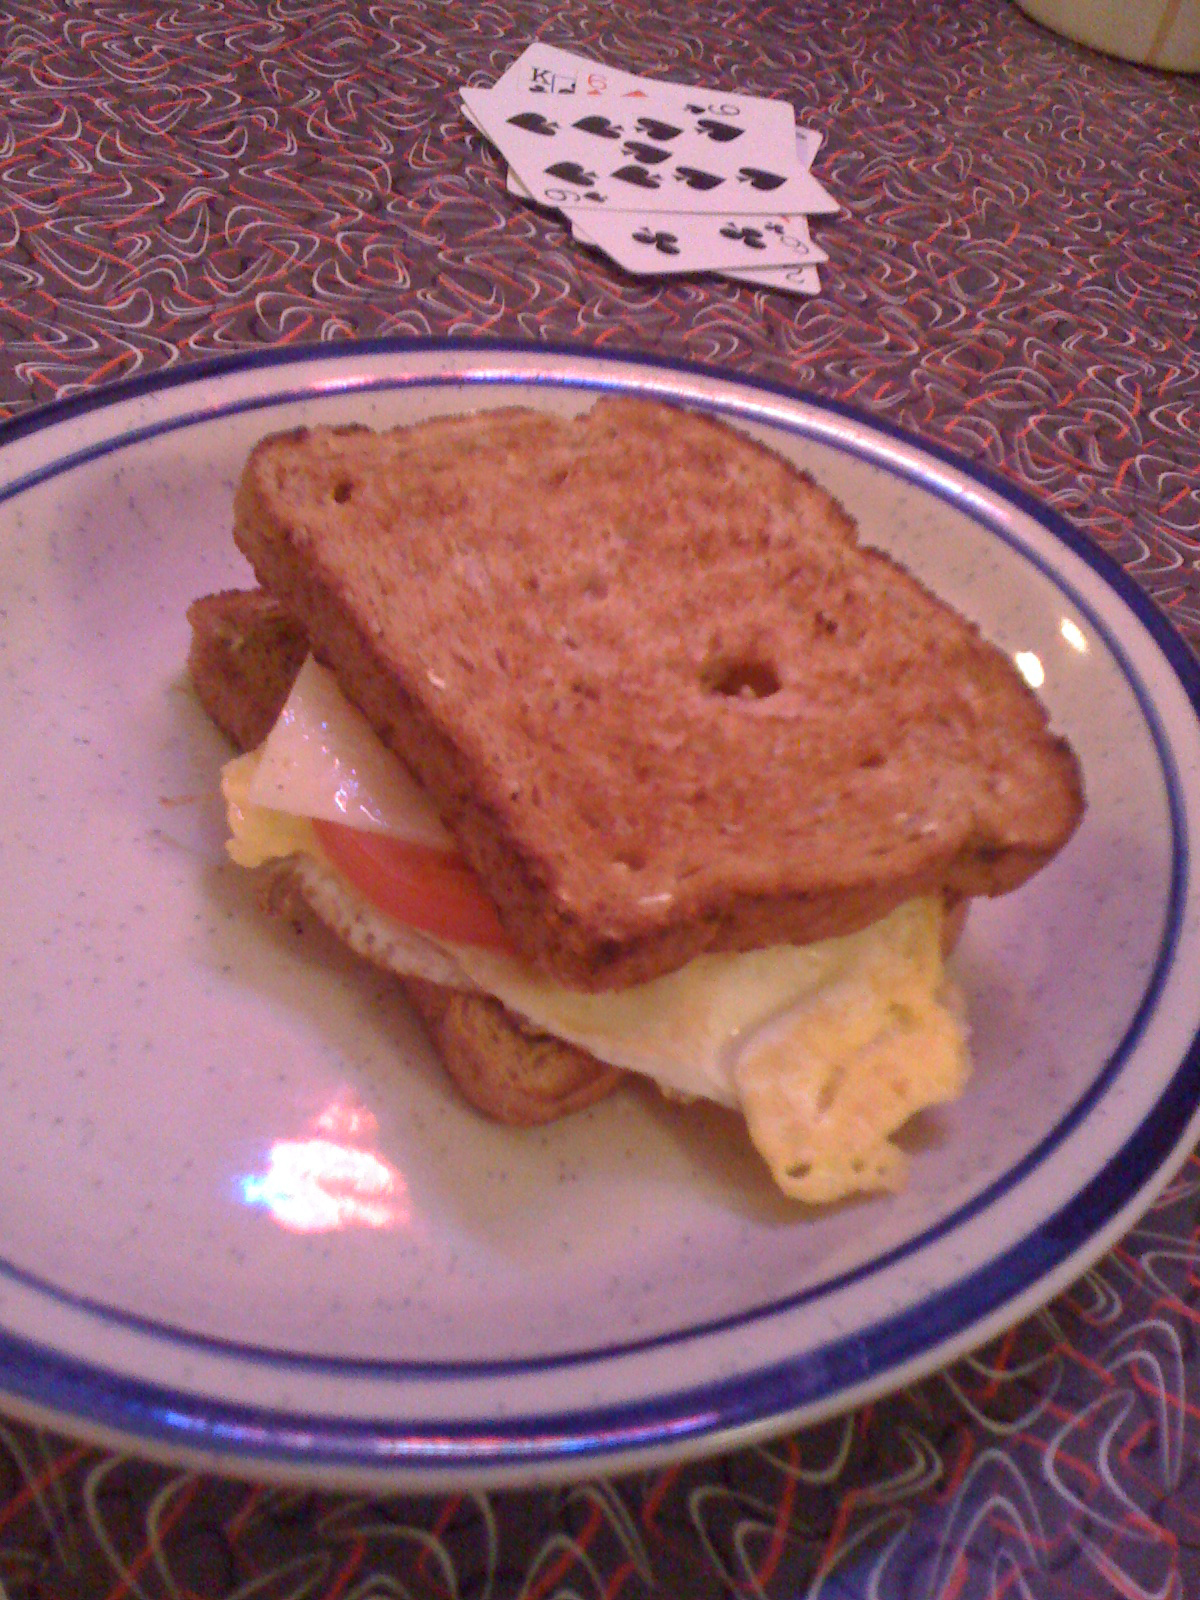 Red-Arrow Milford, NH :: I wanted a grilled cheese with tomato and a flat egg... what I got was breaded toasted on eachside with very little cheese.... a grilled cheese has lots of cheese in it!!!!  lets go red-arrow people!